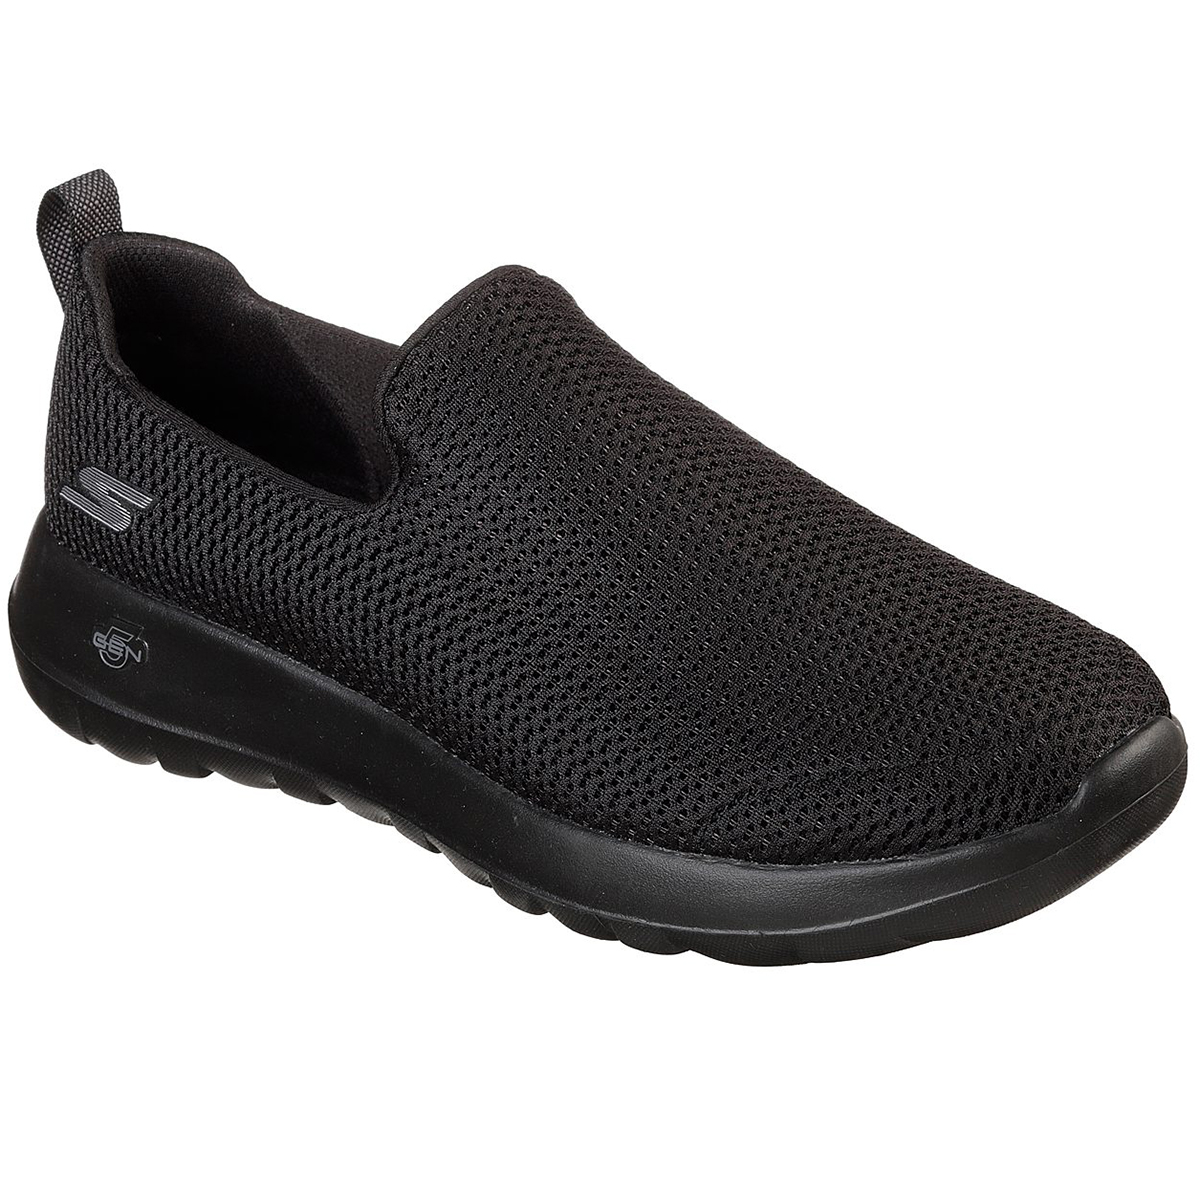 Skechers Men's Gowalk Max Casual Slip-On Shoes, Wide - Black, 9.5